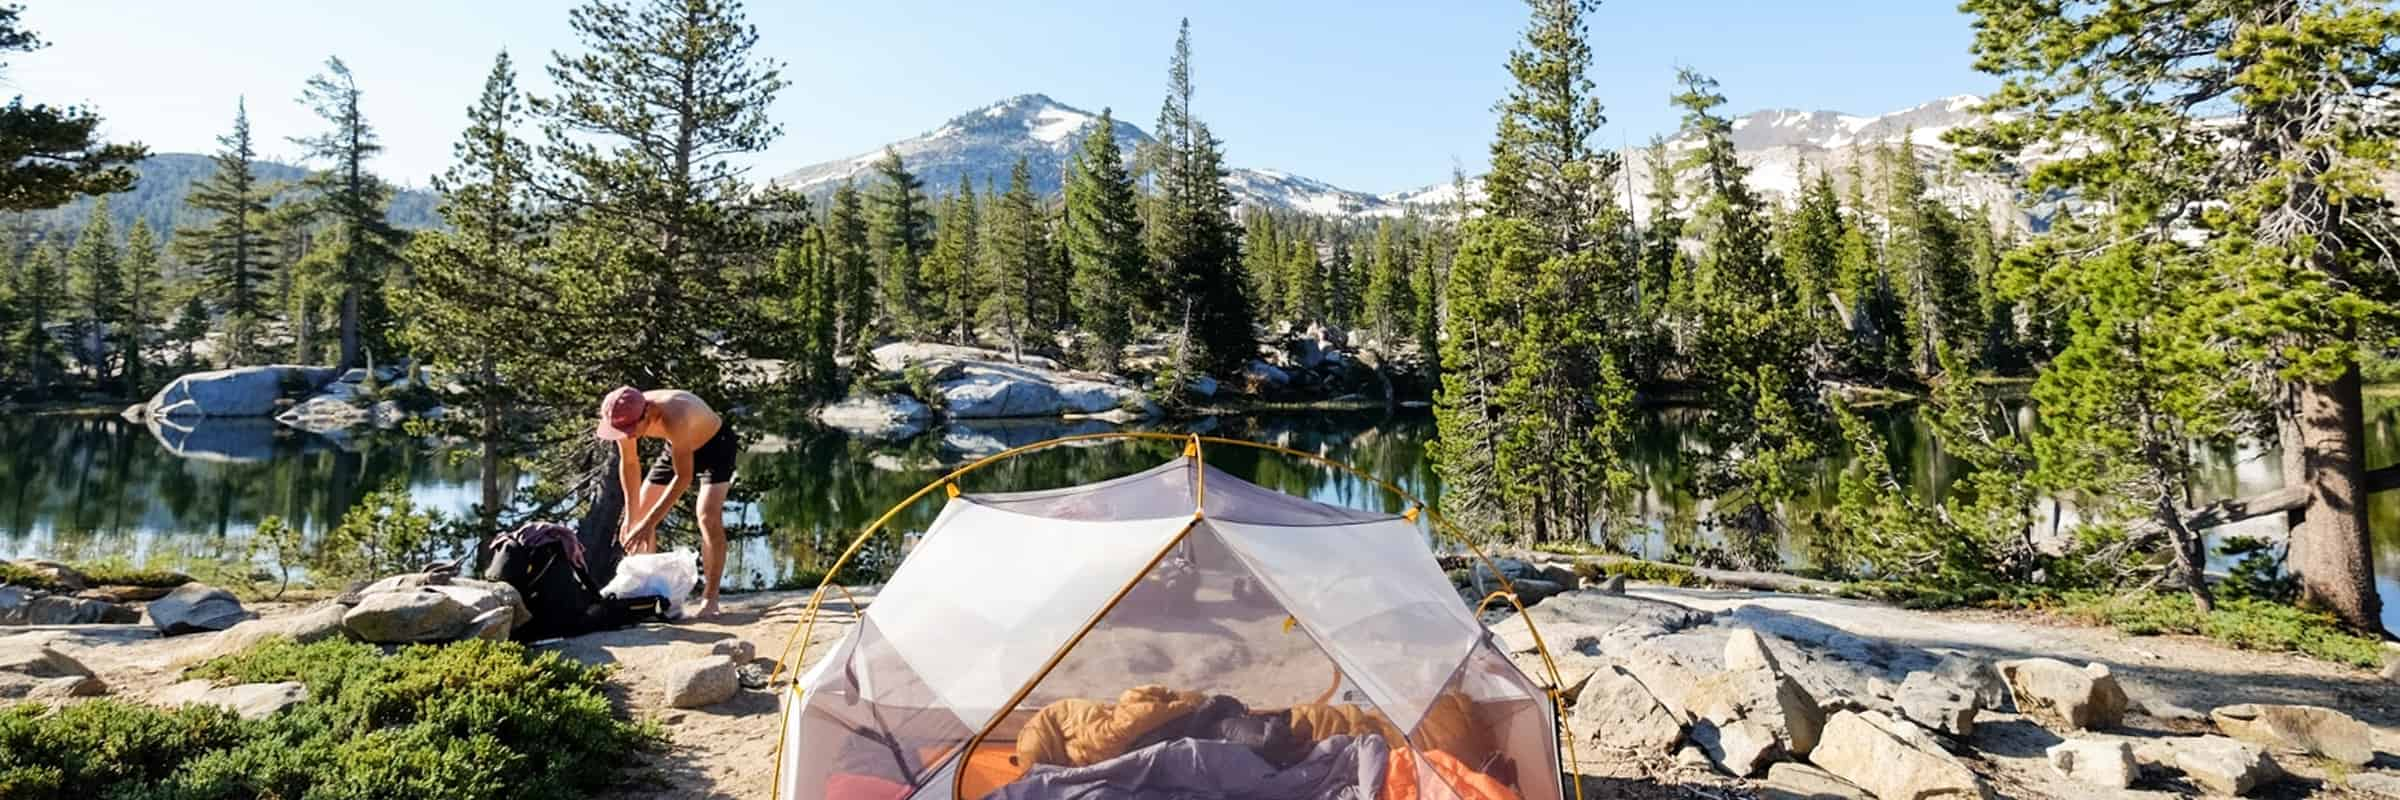 Camping, The North Face. How To Choose The Right Backpacking Tent